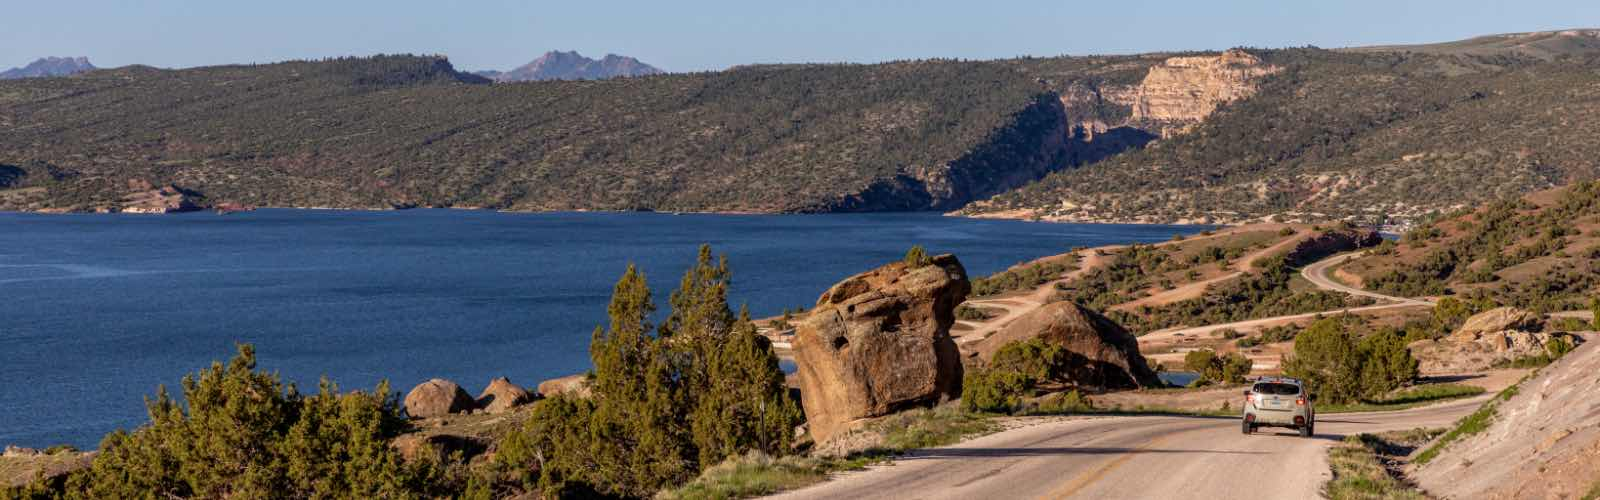 A car is driving along a windy road with the Alcova Reservoir lake on the left.